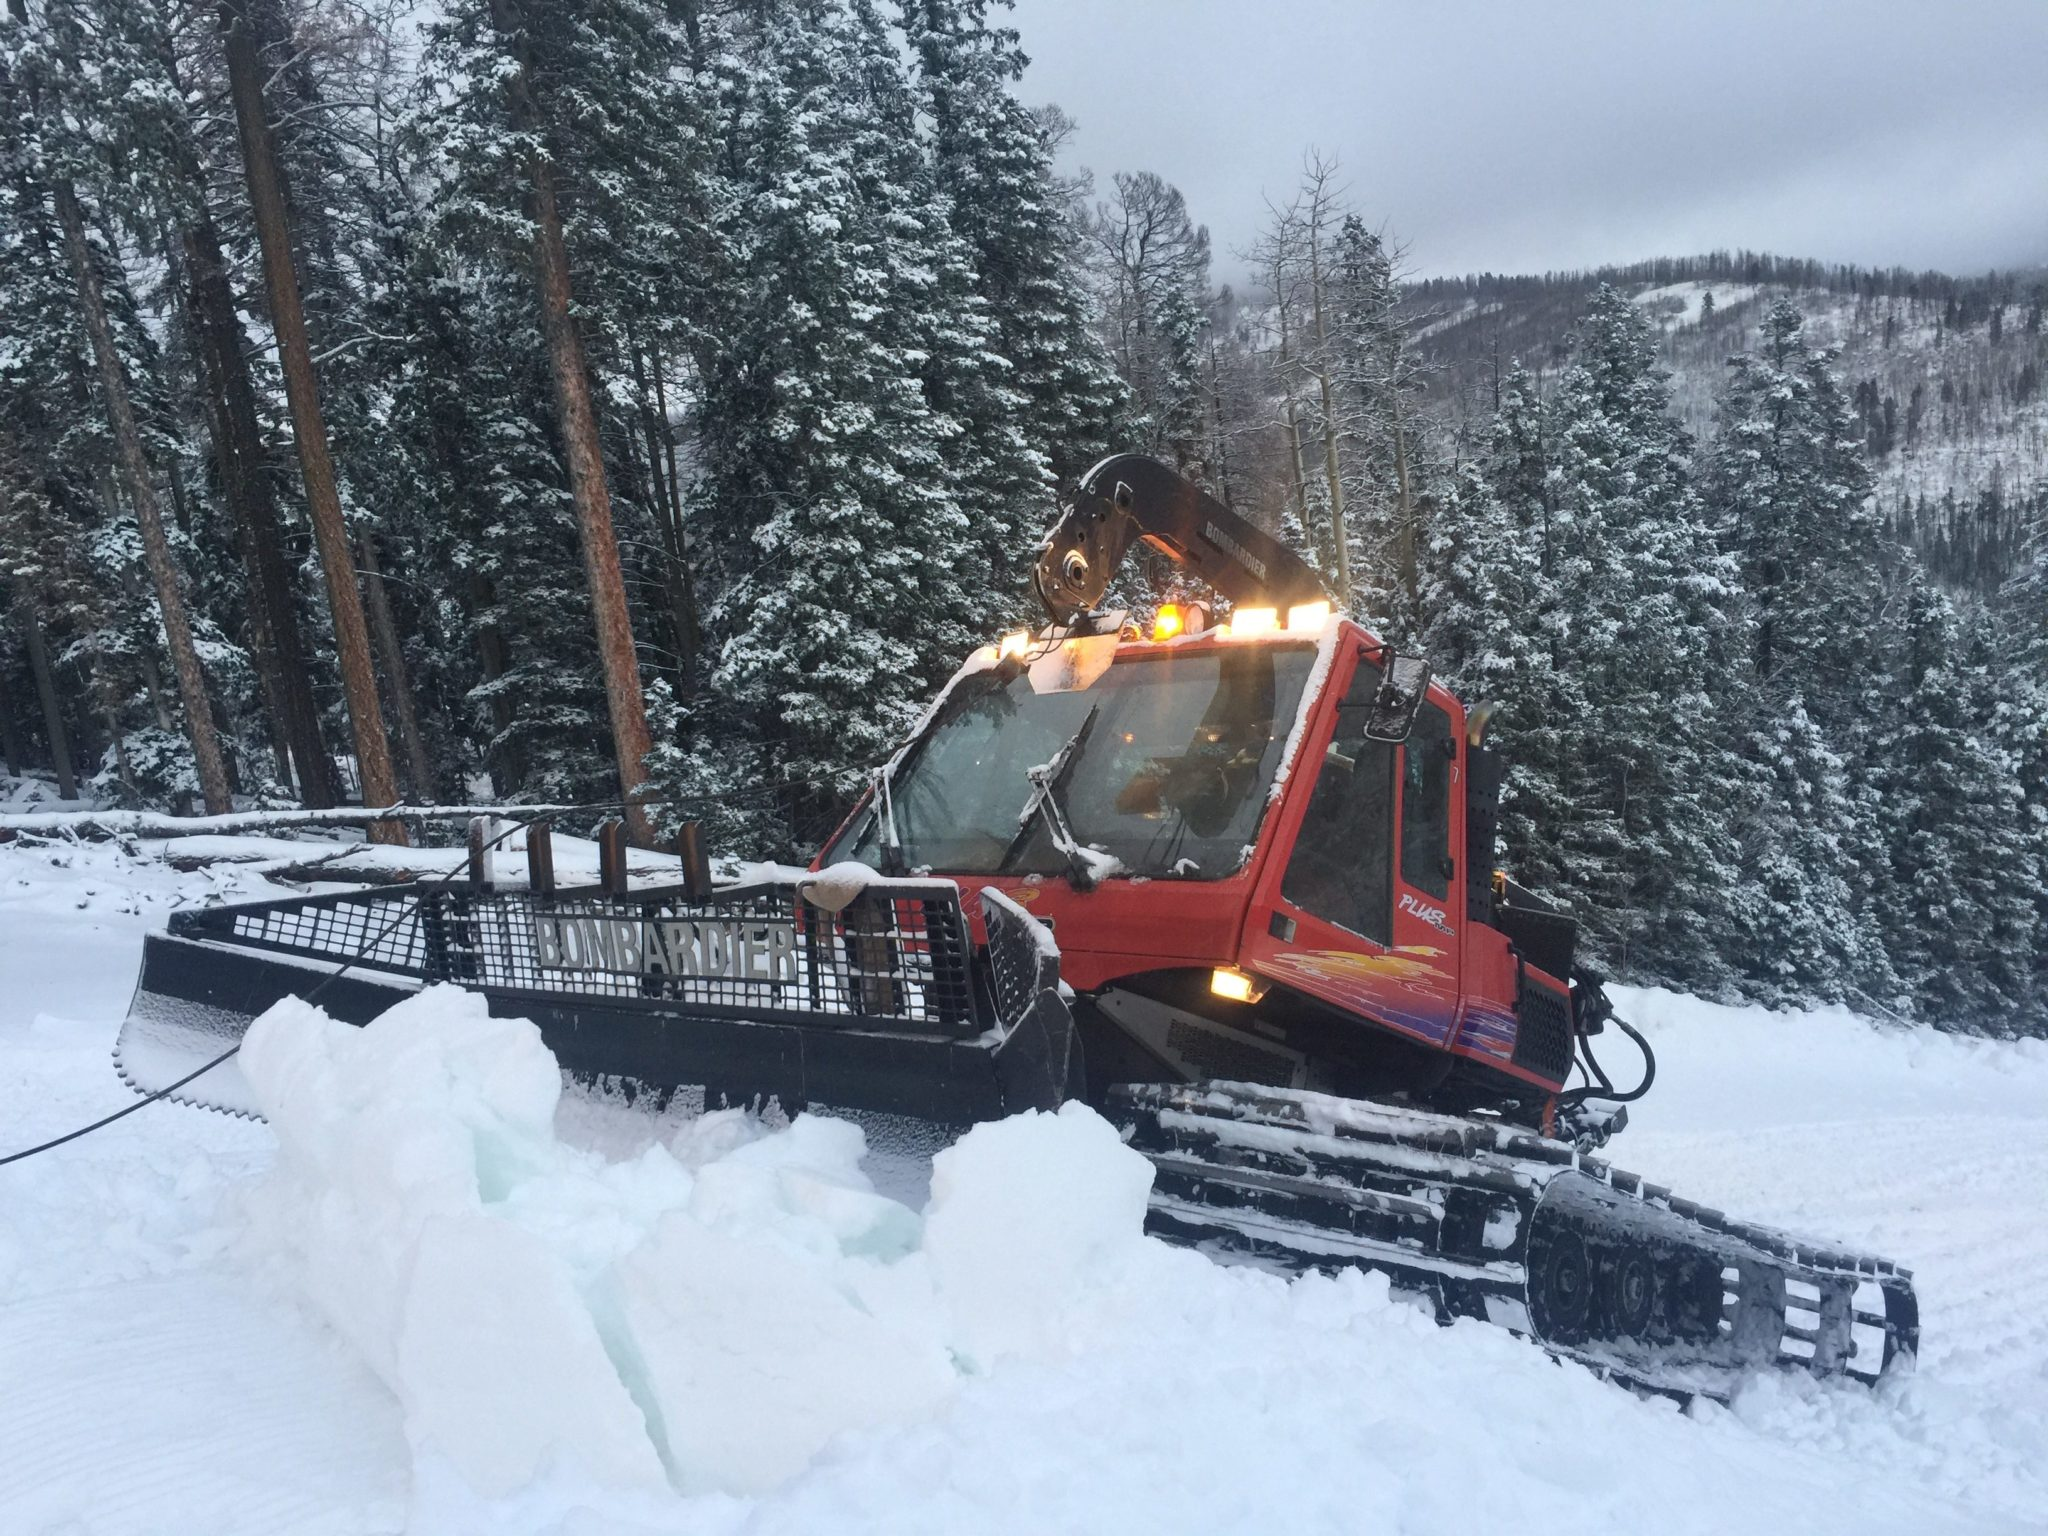 Me in the snowcat trackpacking our new snow!